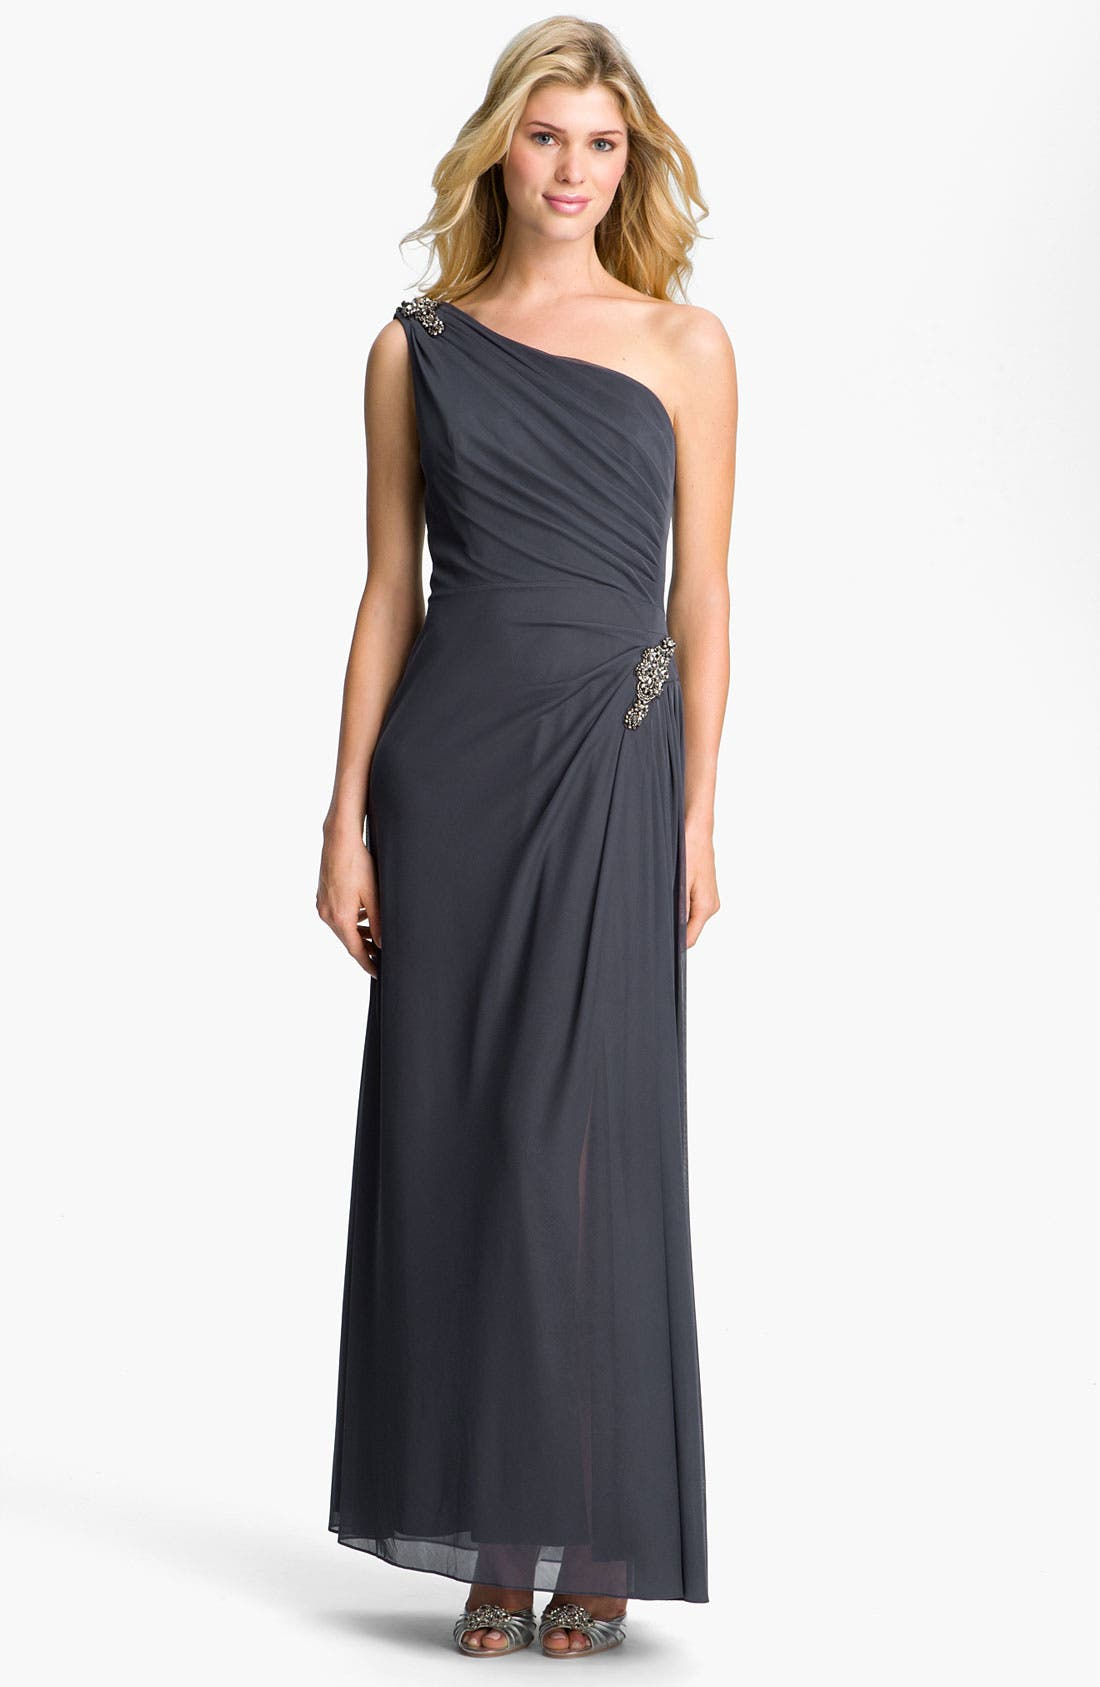 Alternate Image 1 Selected - Alex Evenings One Shoulder Ruched Mesh Gown